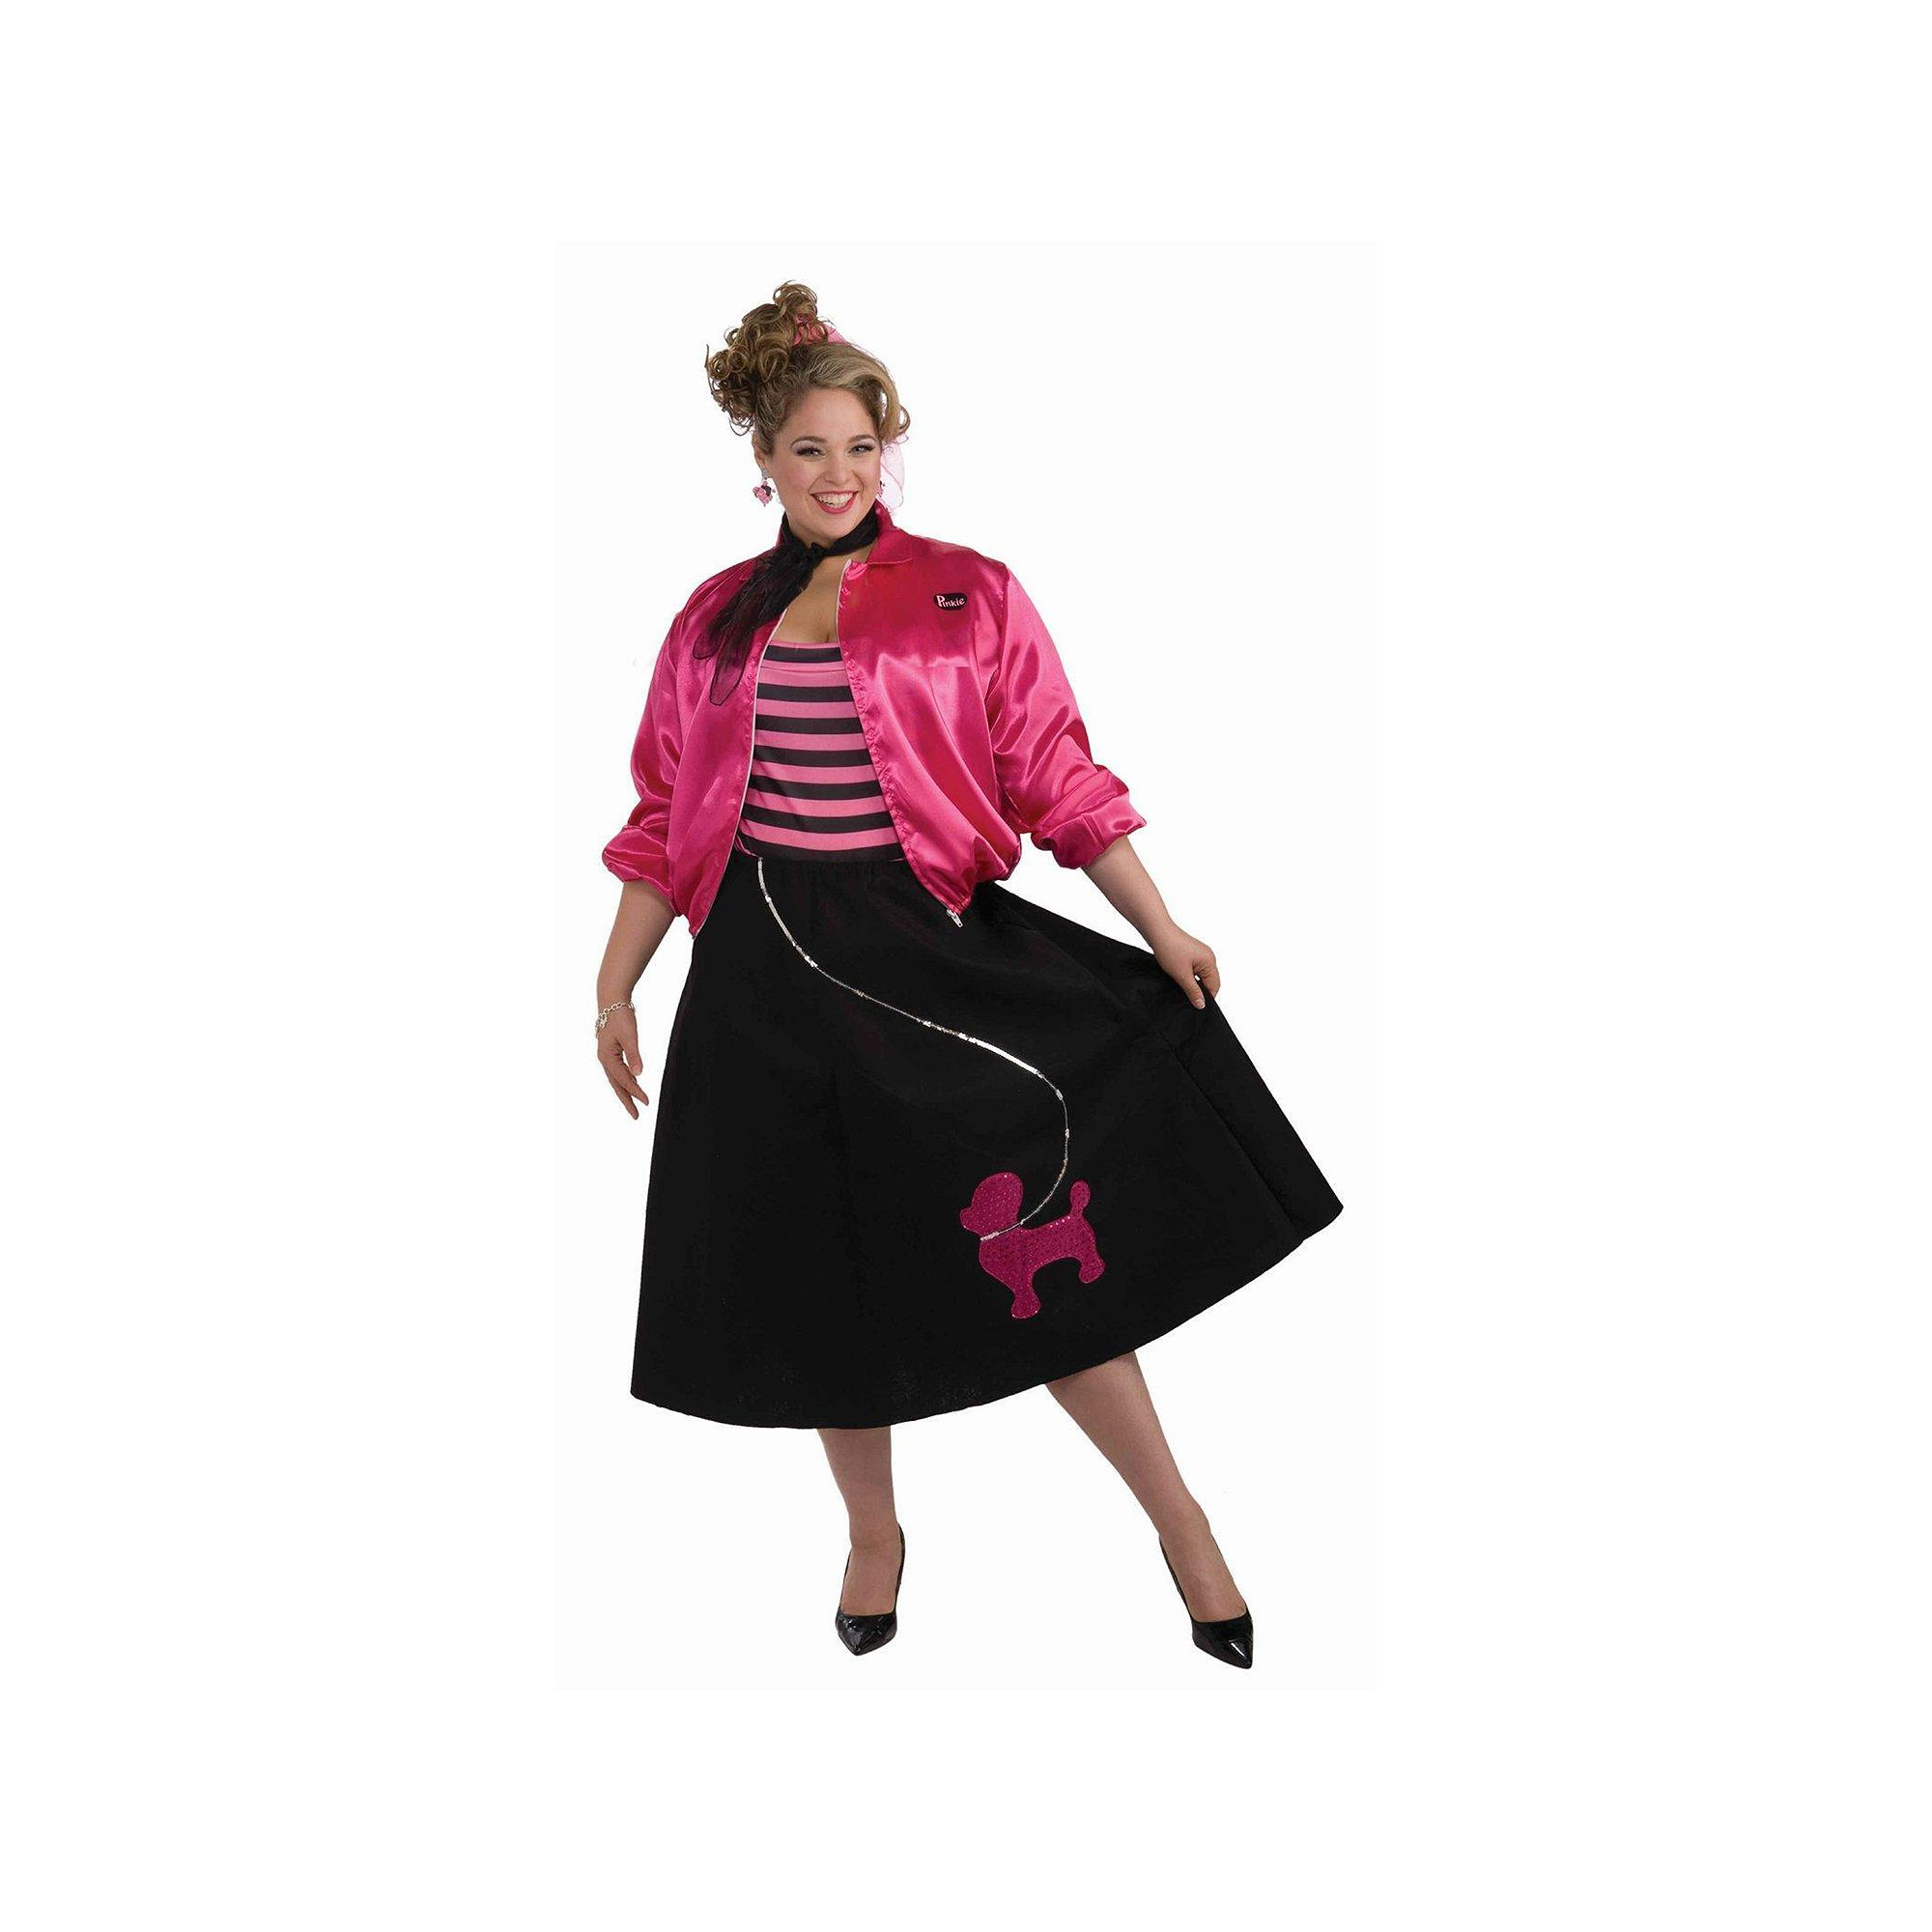 b5948238a501d Plus Size Poodle Skirt Costume Set - Adult Plus, Women's, Multicolor ...